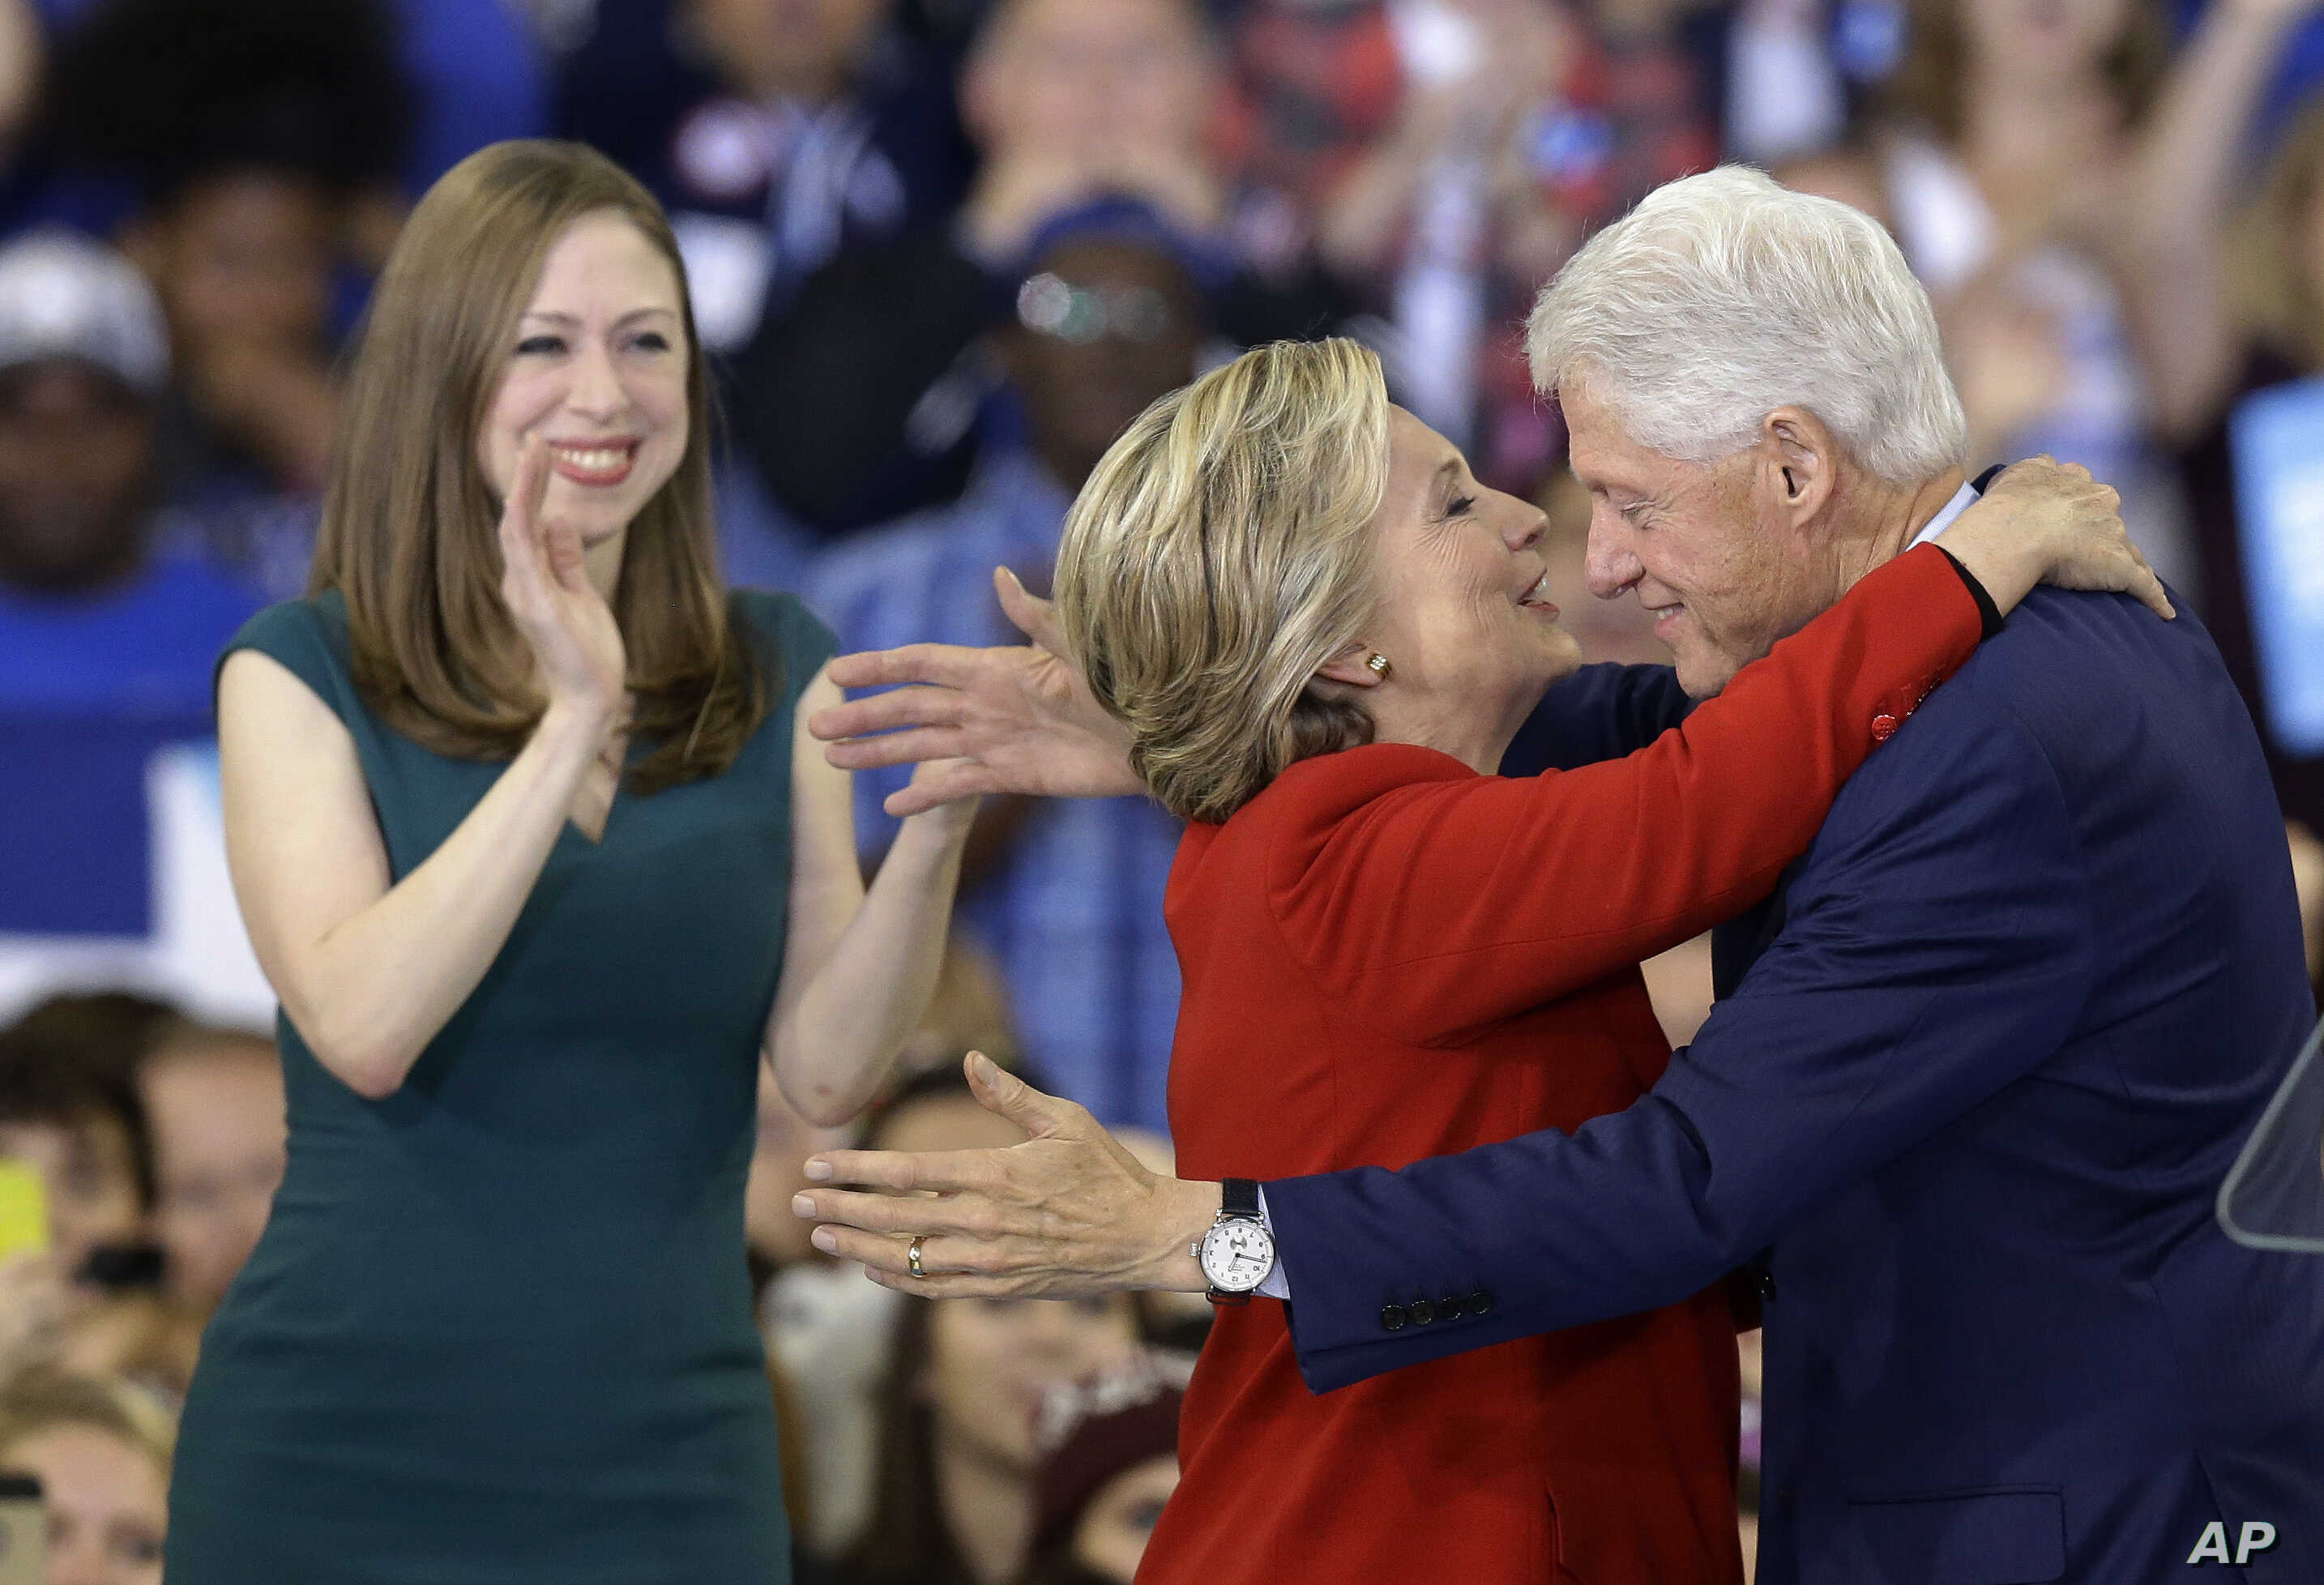 Democratic presidential candidate Hillary Clinton hugs her husband, former President Bill Clinton as their daughter Chelsea Clinton looks on during a campaign rally in Raleigh, N.C., Nov. 8, 2016.